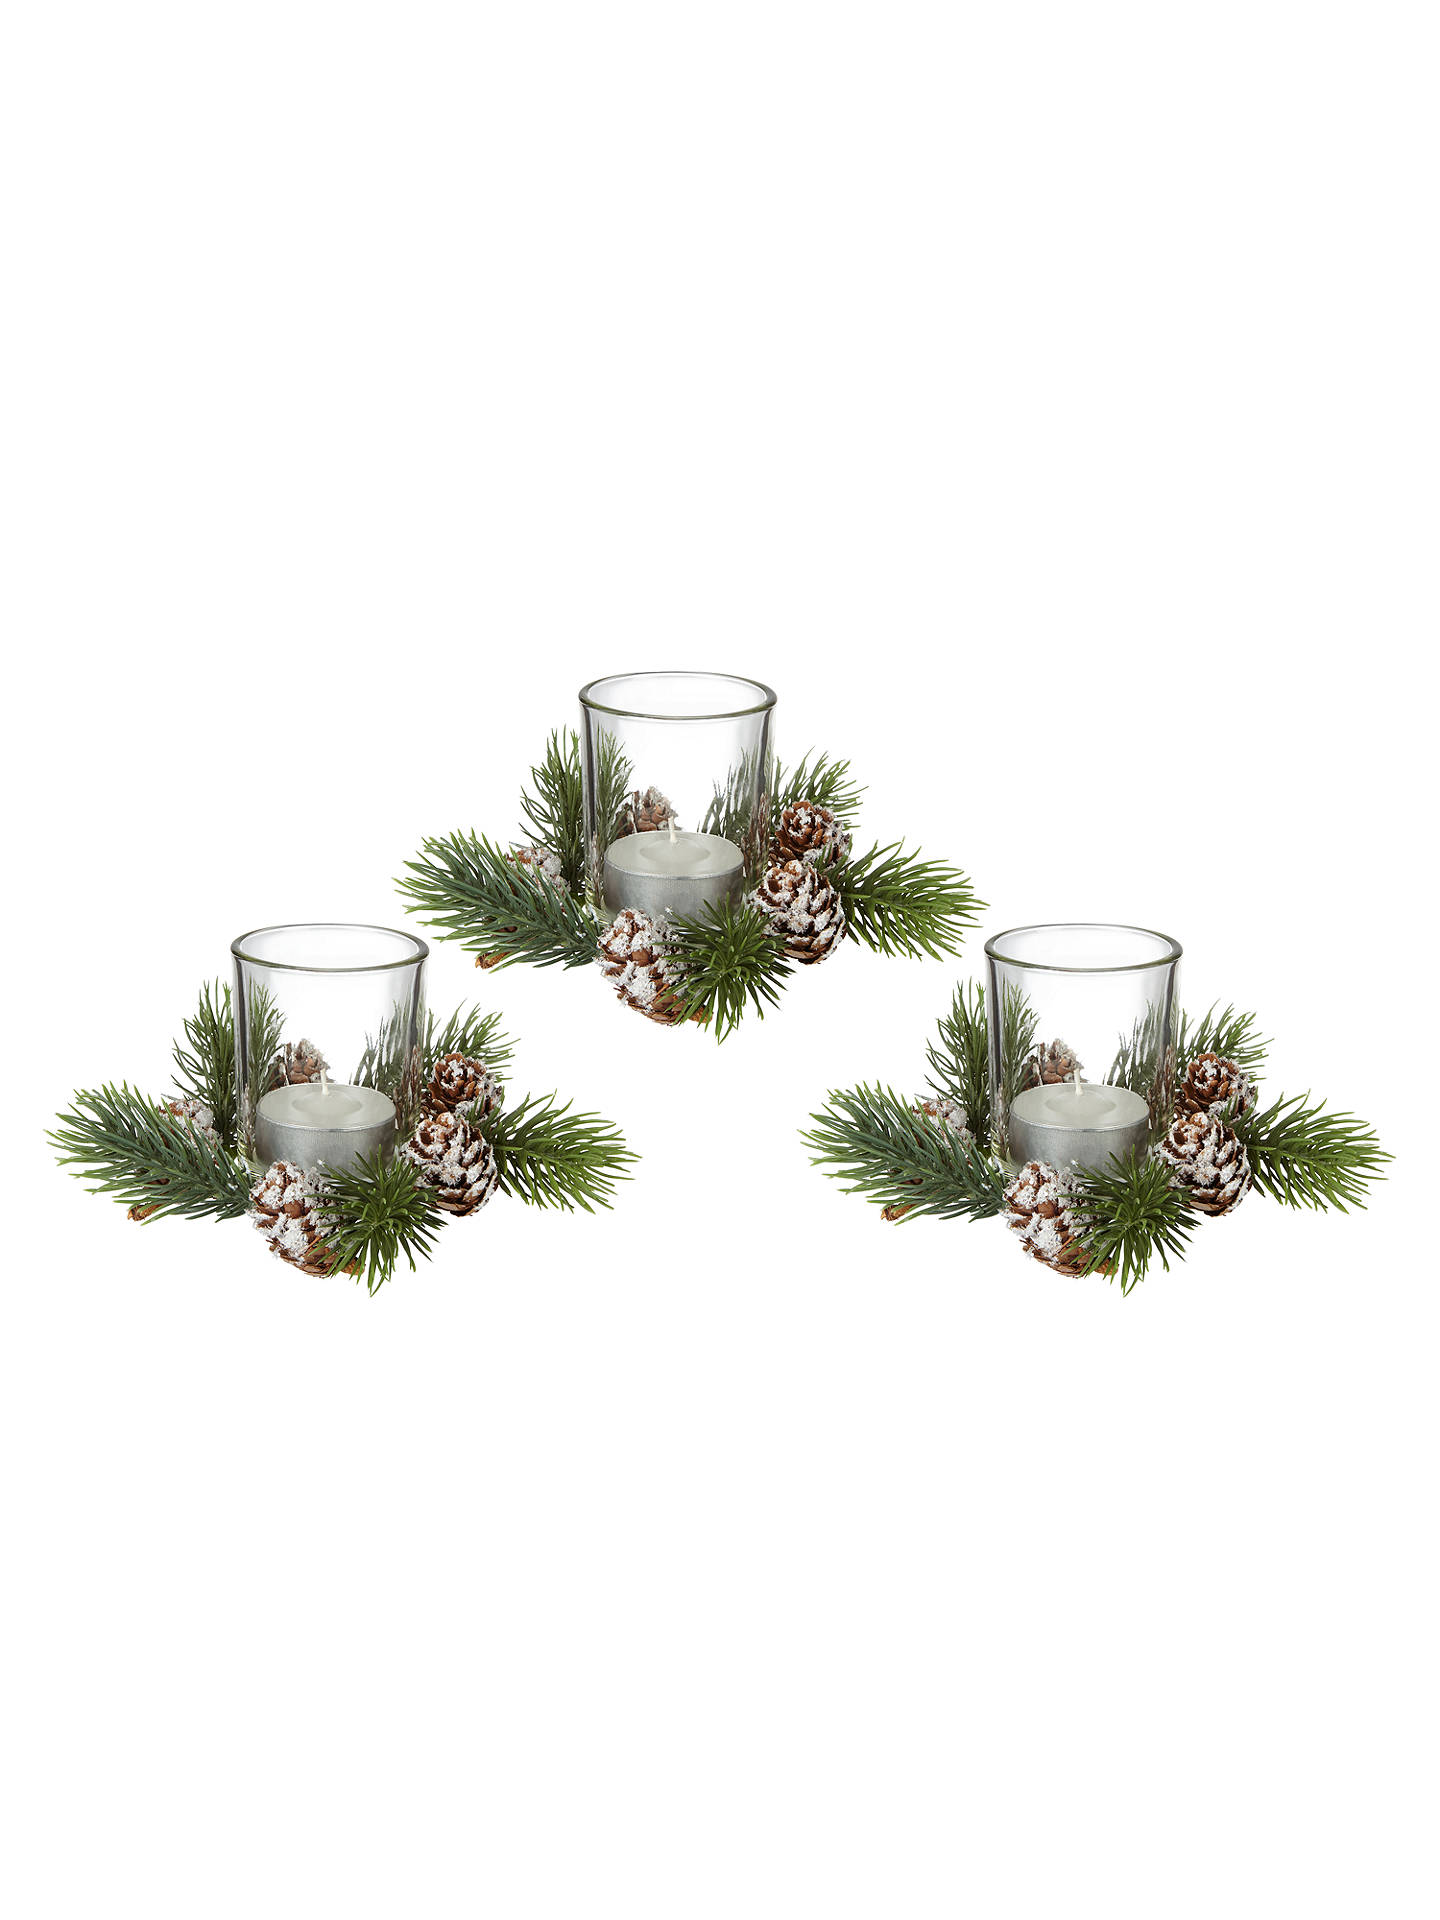 BuyJohn Lewis Ruskin House Pinecone Votives, Set of 3 Online at johnlewis.com